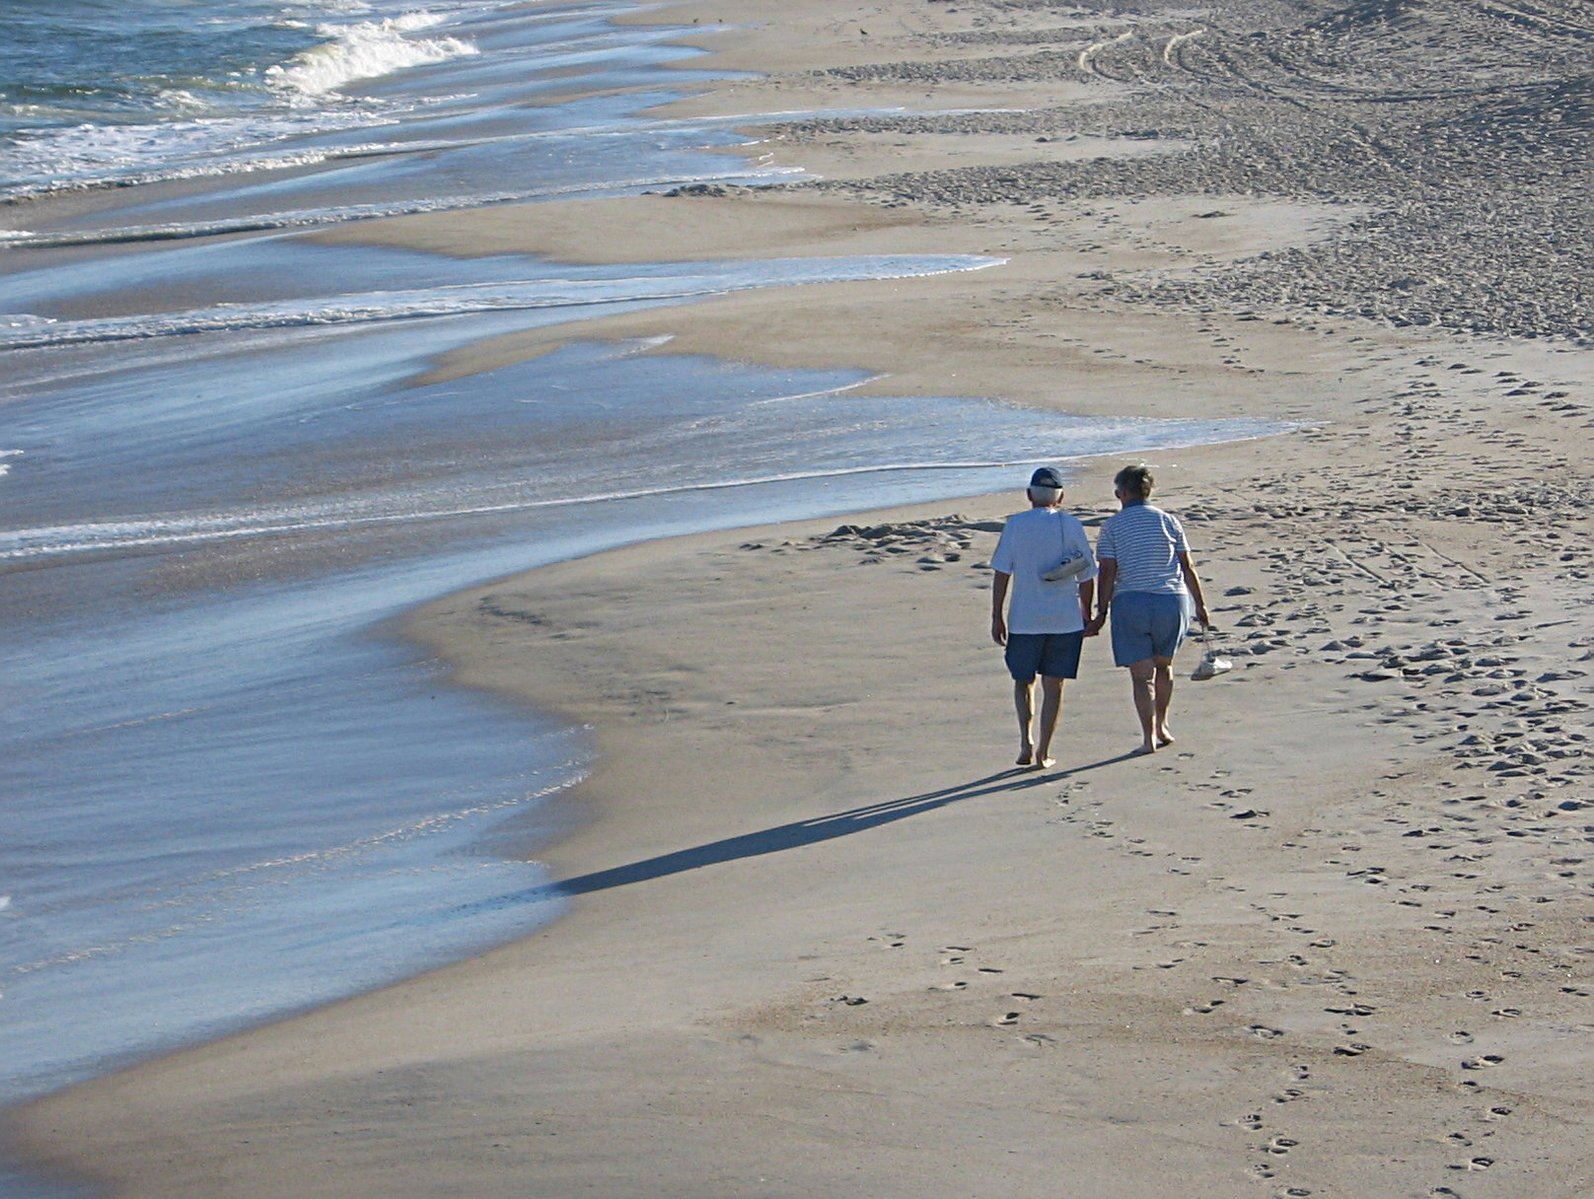 Increase Life Expectancy - Average walking speed is a powerful indicator of life expectancy.